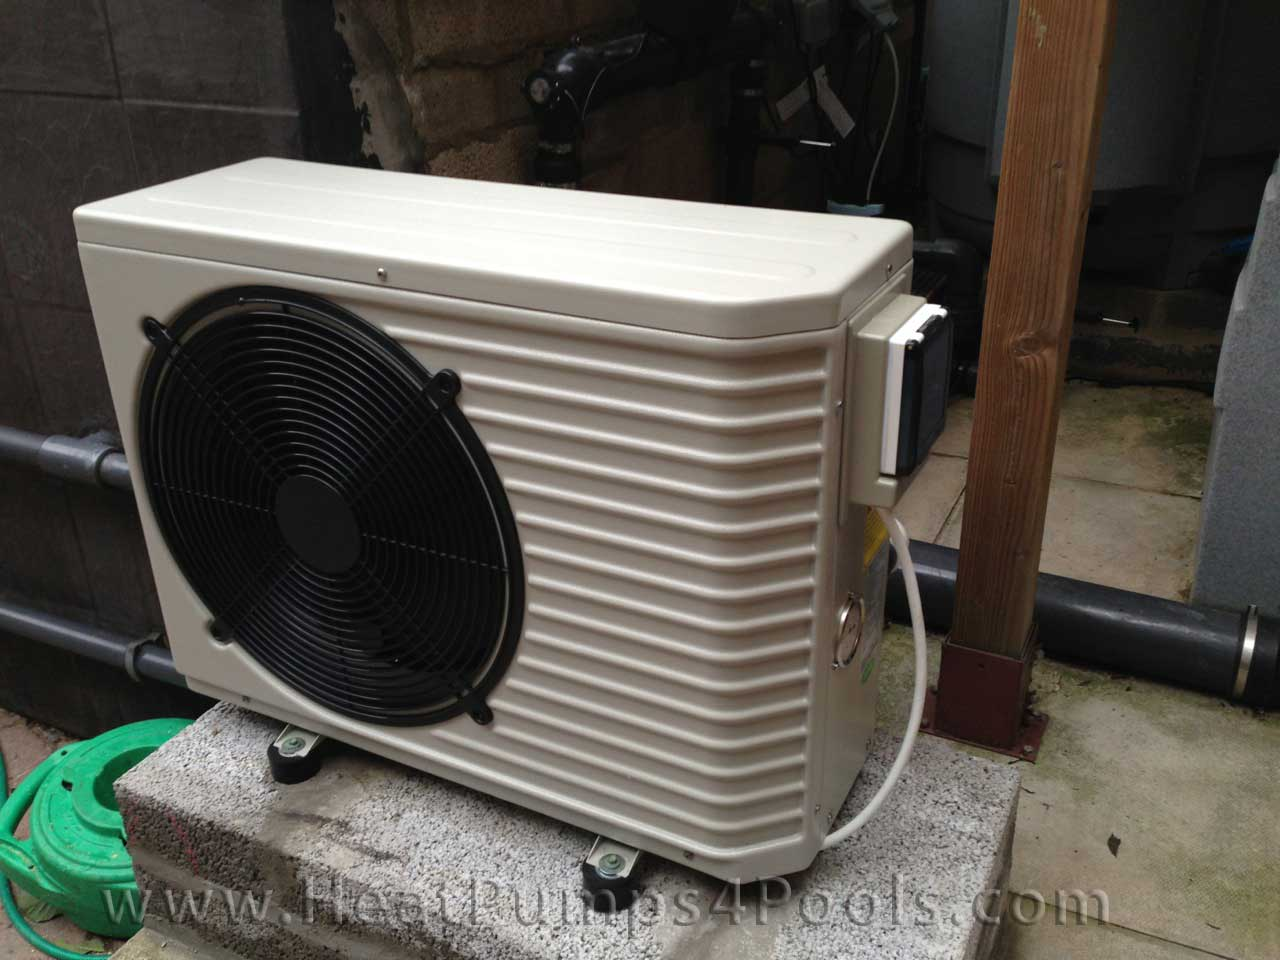 Pool heat pump photo gallery for Koi pool heaters